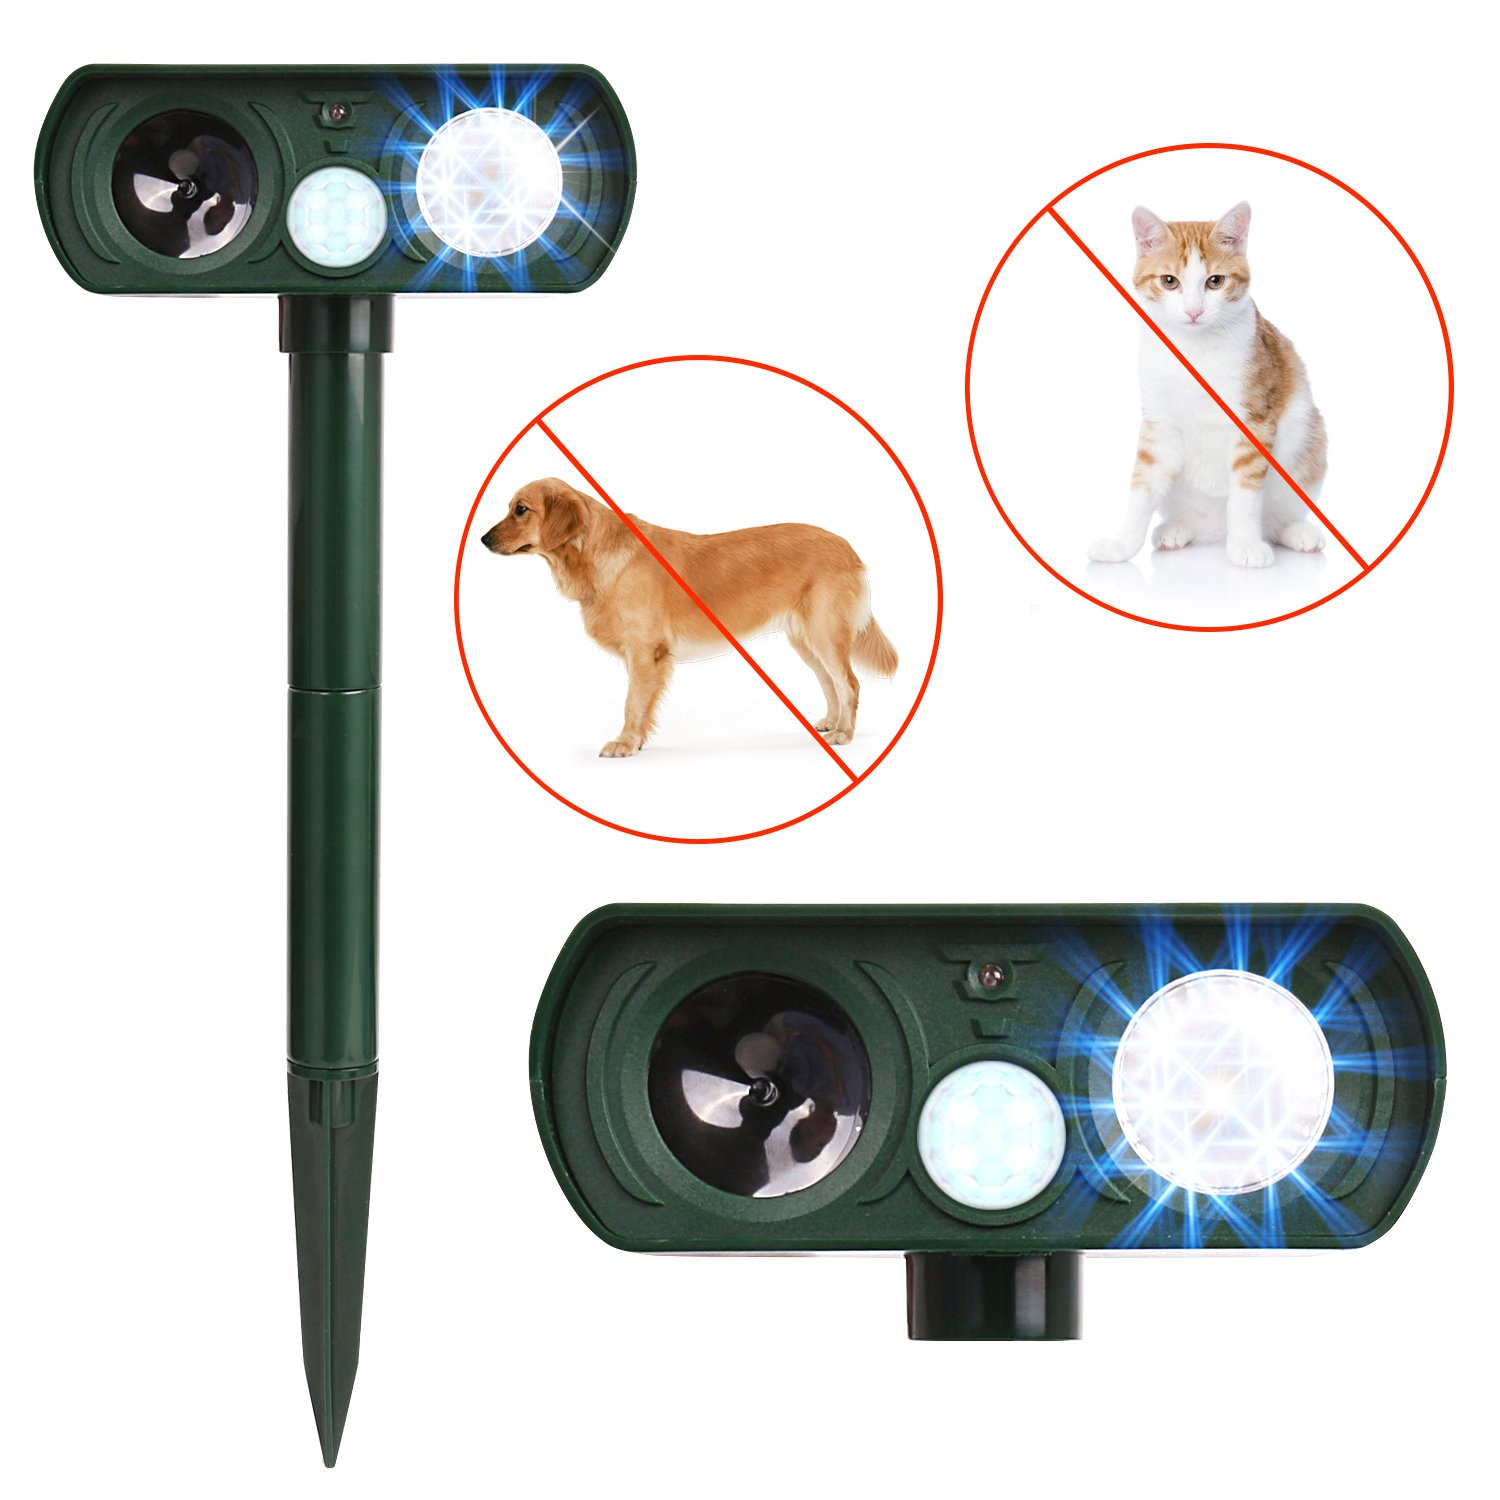 Dog repellent ultrasonic, Outdoor Solar Powered and weatherproof Ultrasonic Pest Repeller